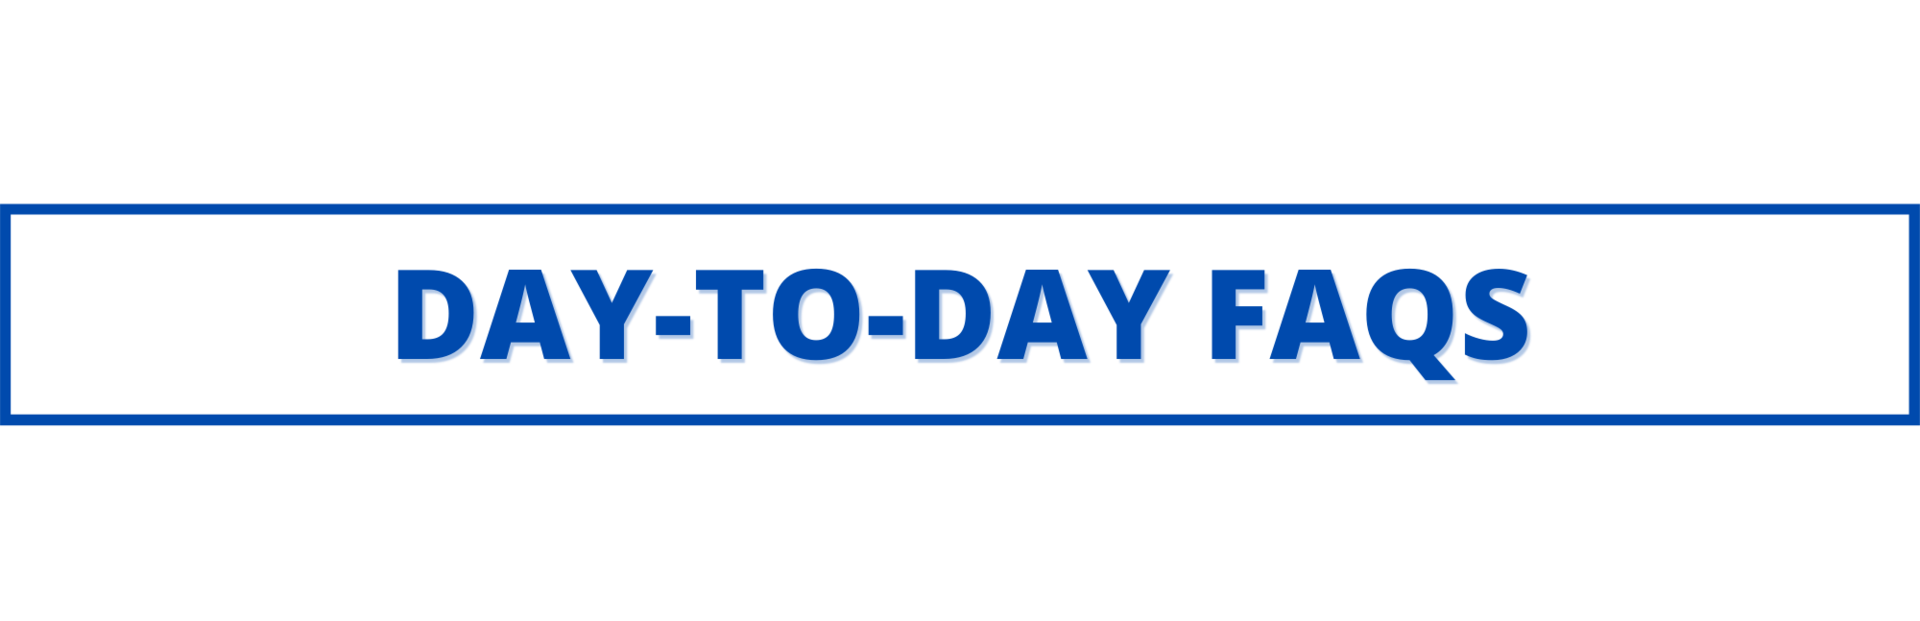 day to day faqs